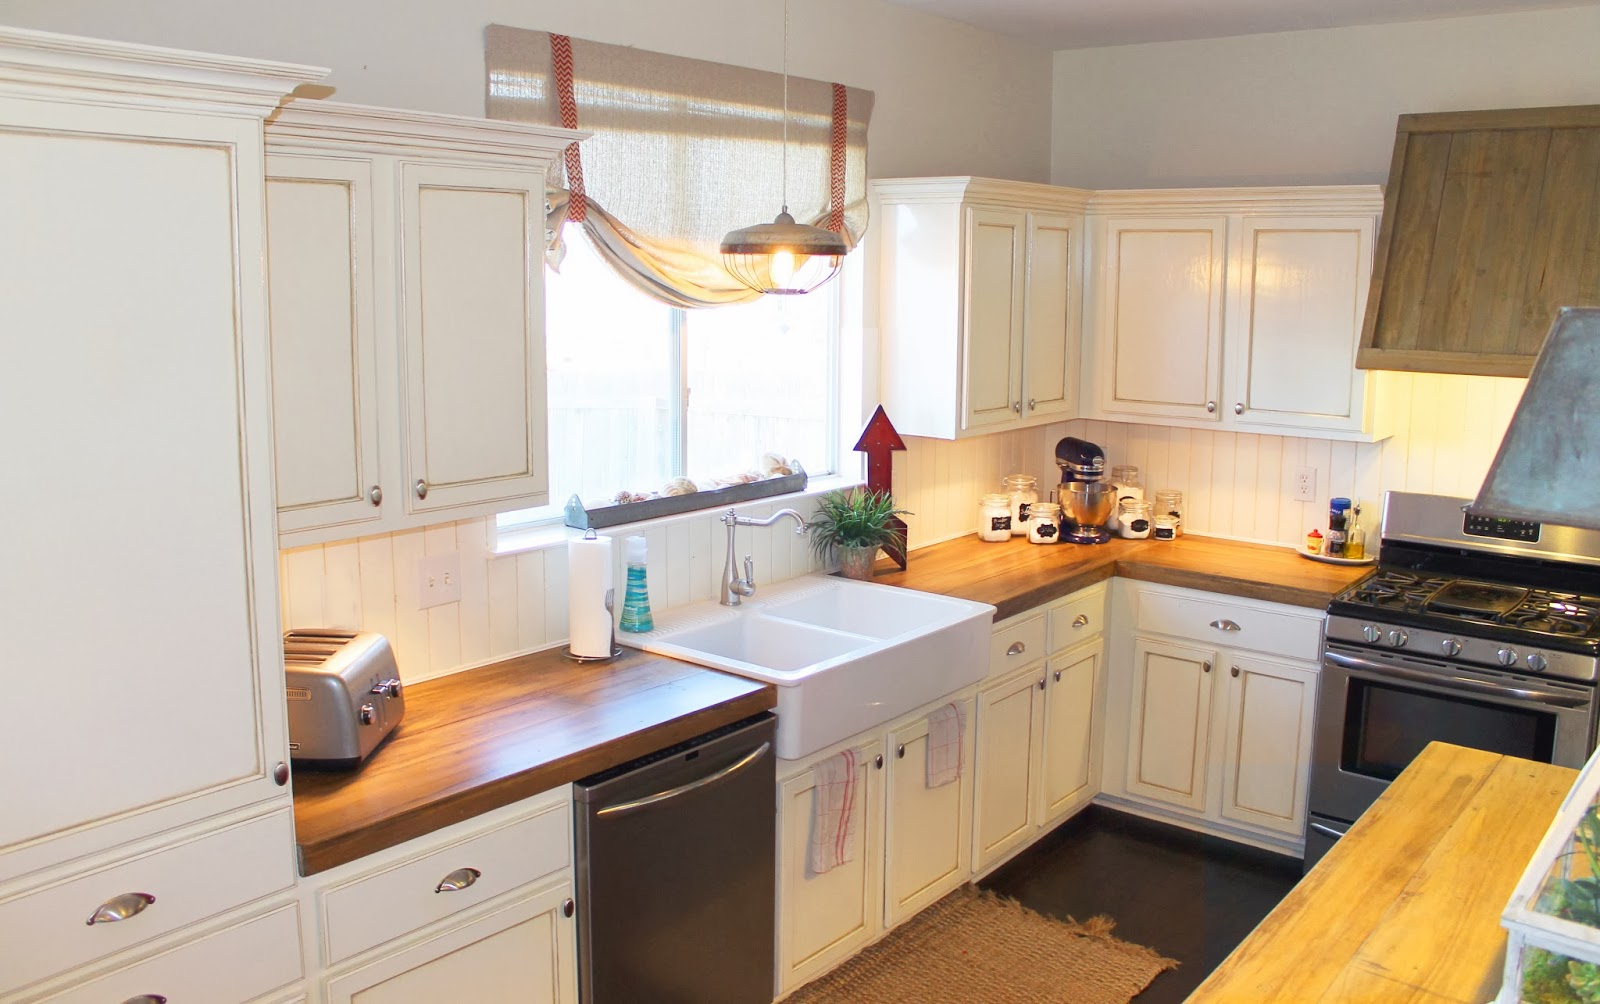 Superb Design Of The Kitchen Countertop Materials With White Cabinets Added With White Wall And Black Silver Stove Ideas